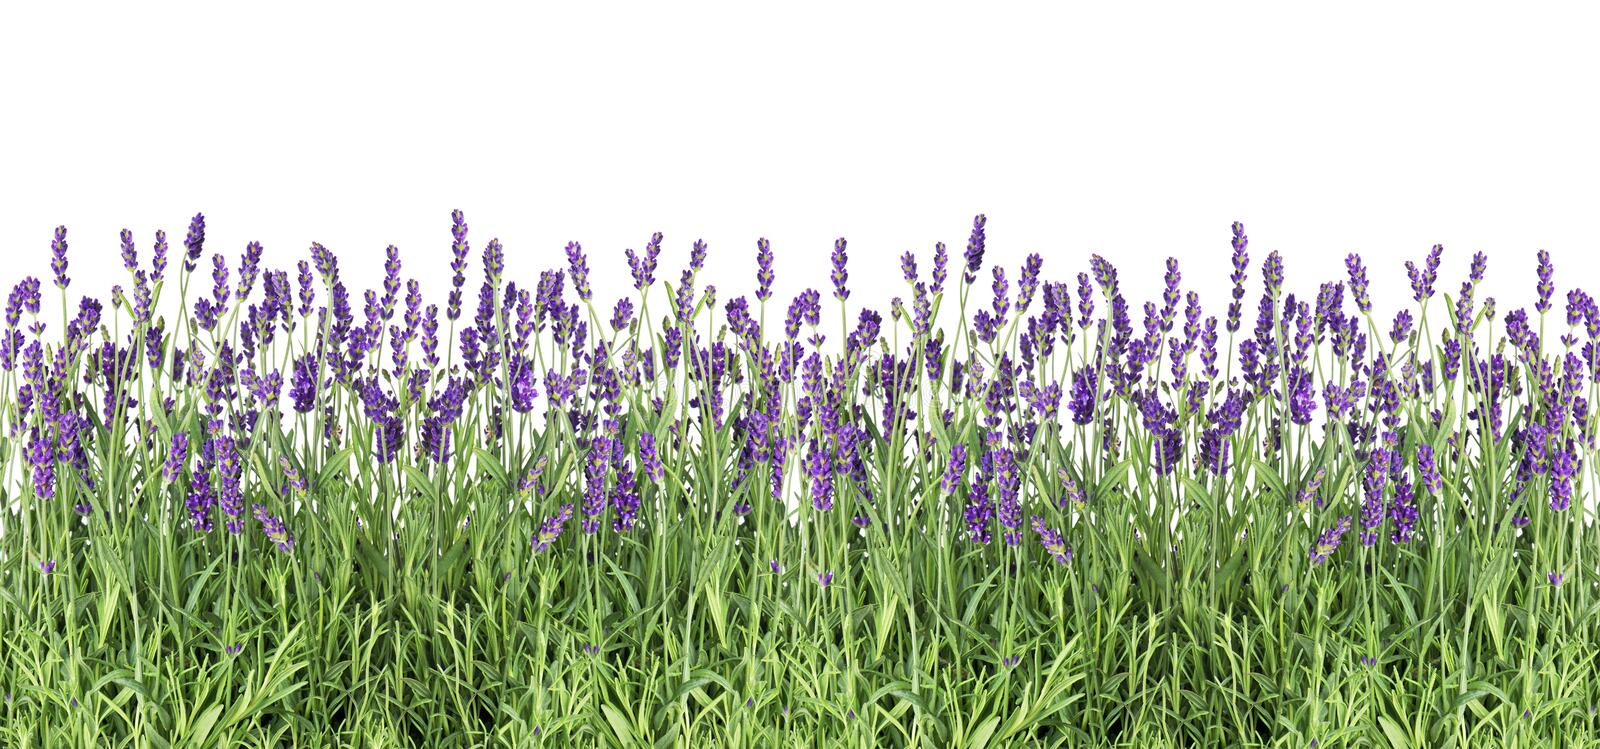 Download Lavender Flowers Fresh Lavender Plants Isolated White Background Stock Image - Image of decoration, nature: 118607205